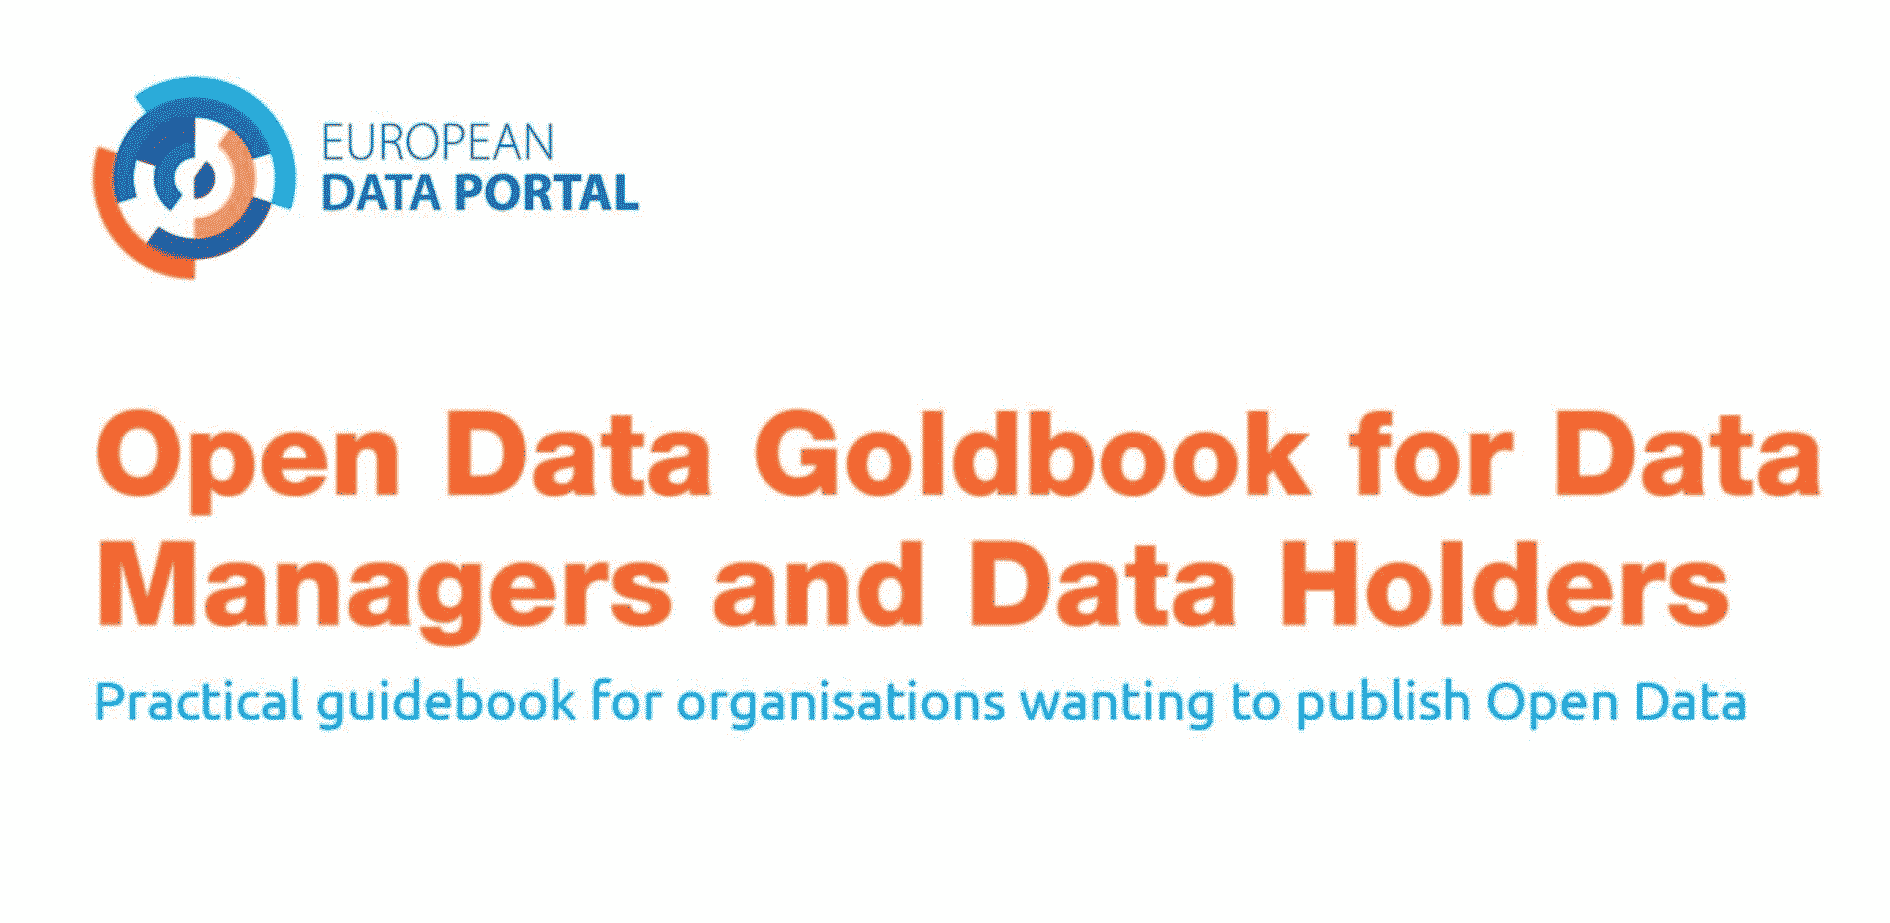 Open Data Goldbook for Data Managers and Data Holders